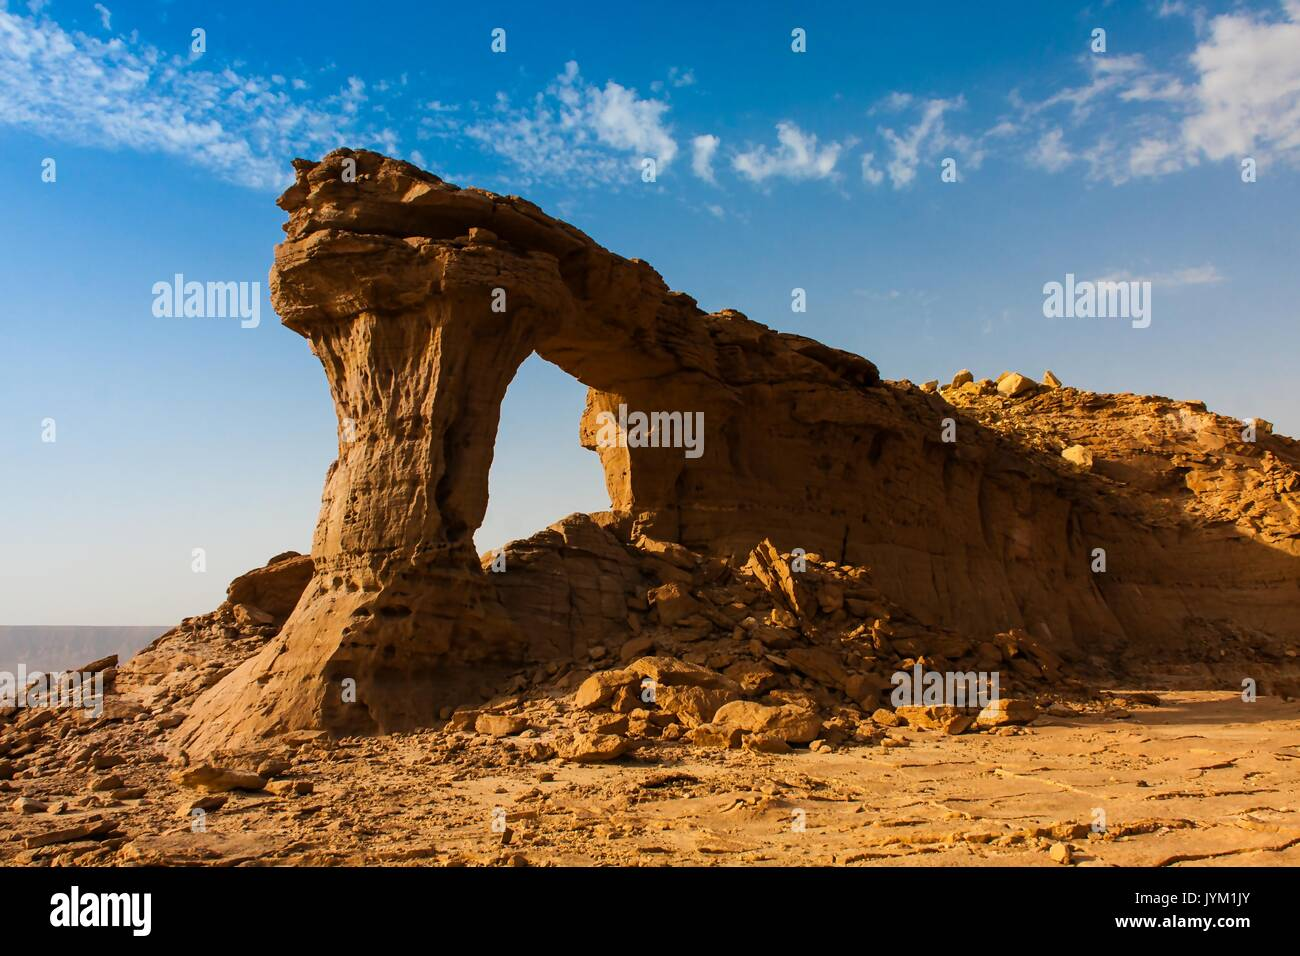 Arche naturelle de Riyadh, Arabie Saoudite Photo Stock